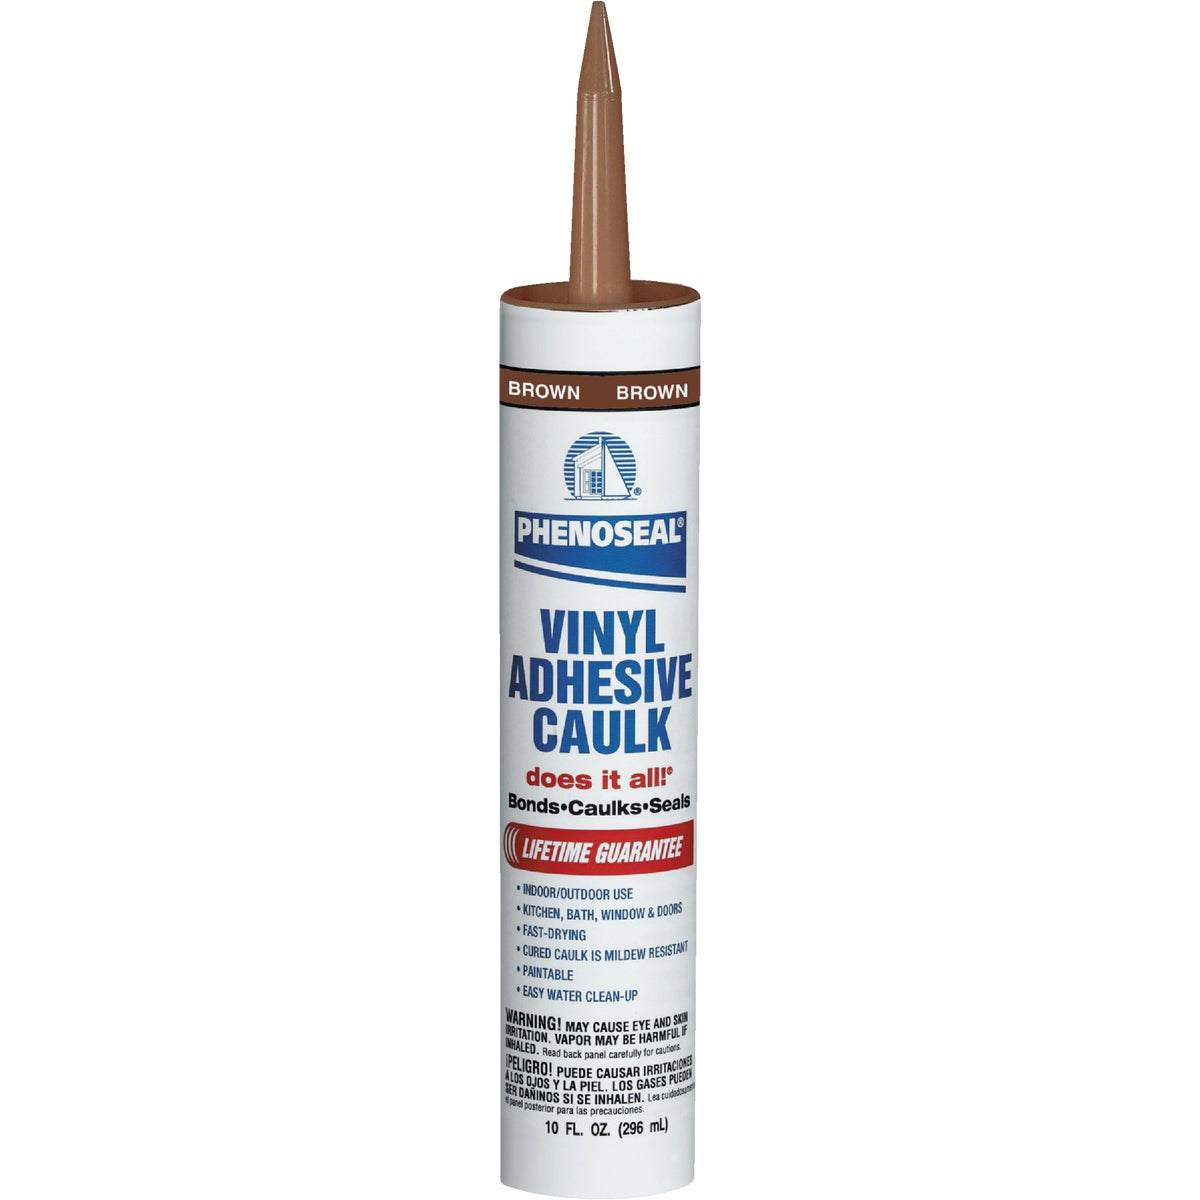 BROWN ADHESIVE CAULK